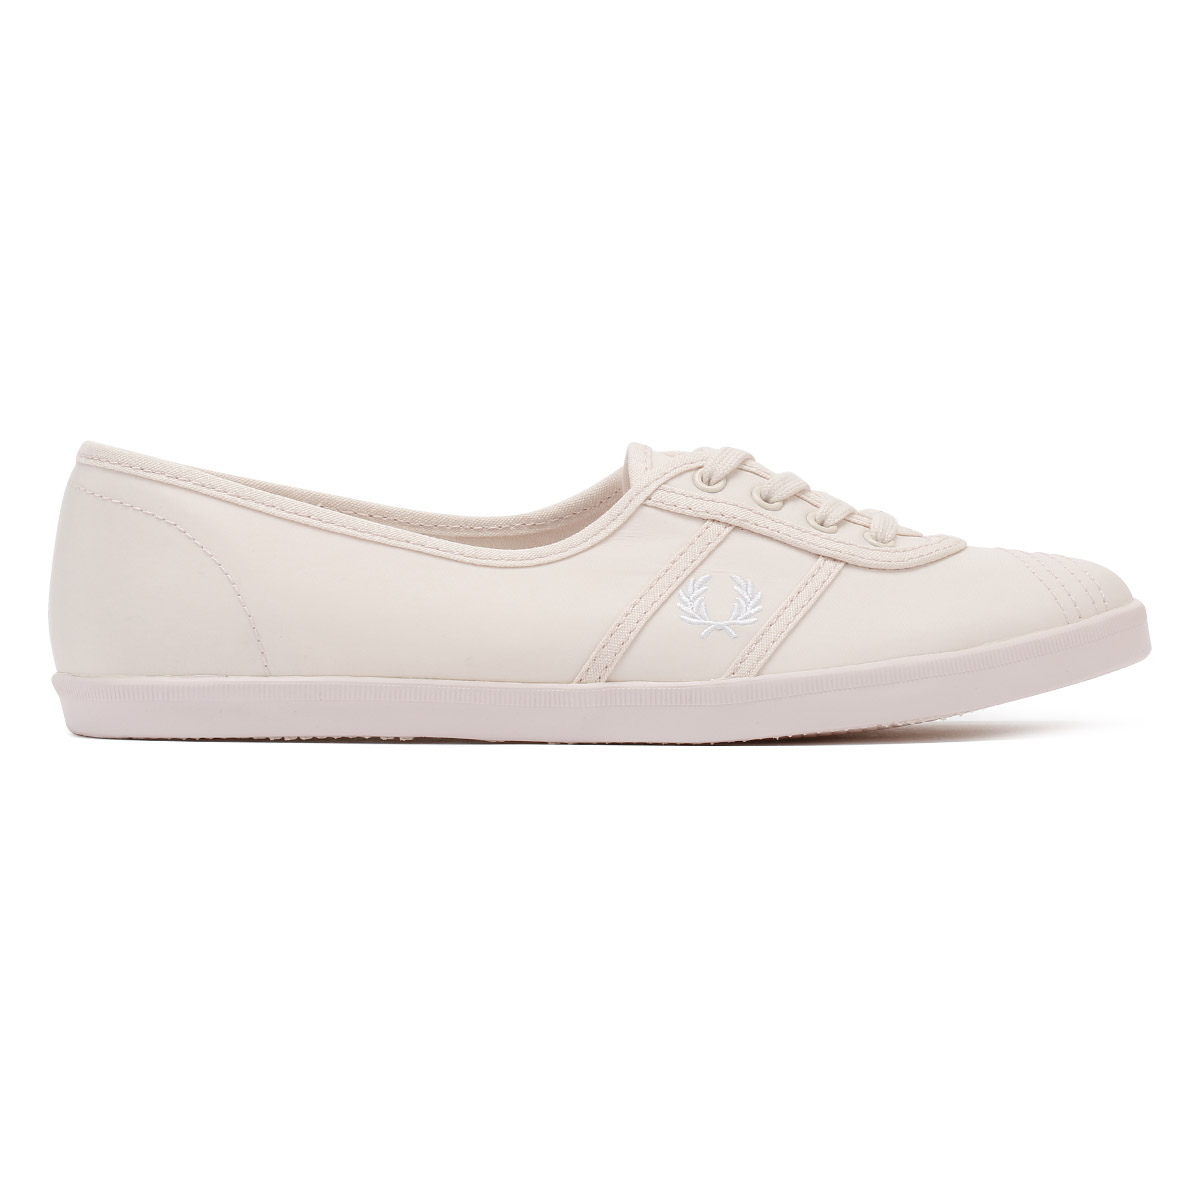 FROT Up Perry Damenschuhe Trainers Pink Aubrey Poly Lace Up FROT Sport Casual Schuhes e445c5